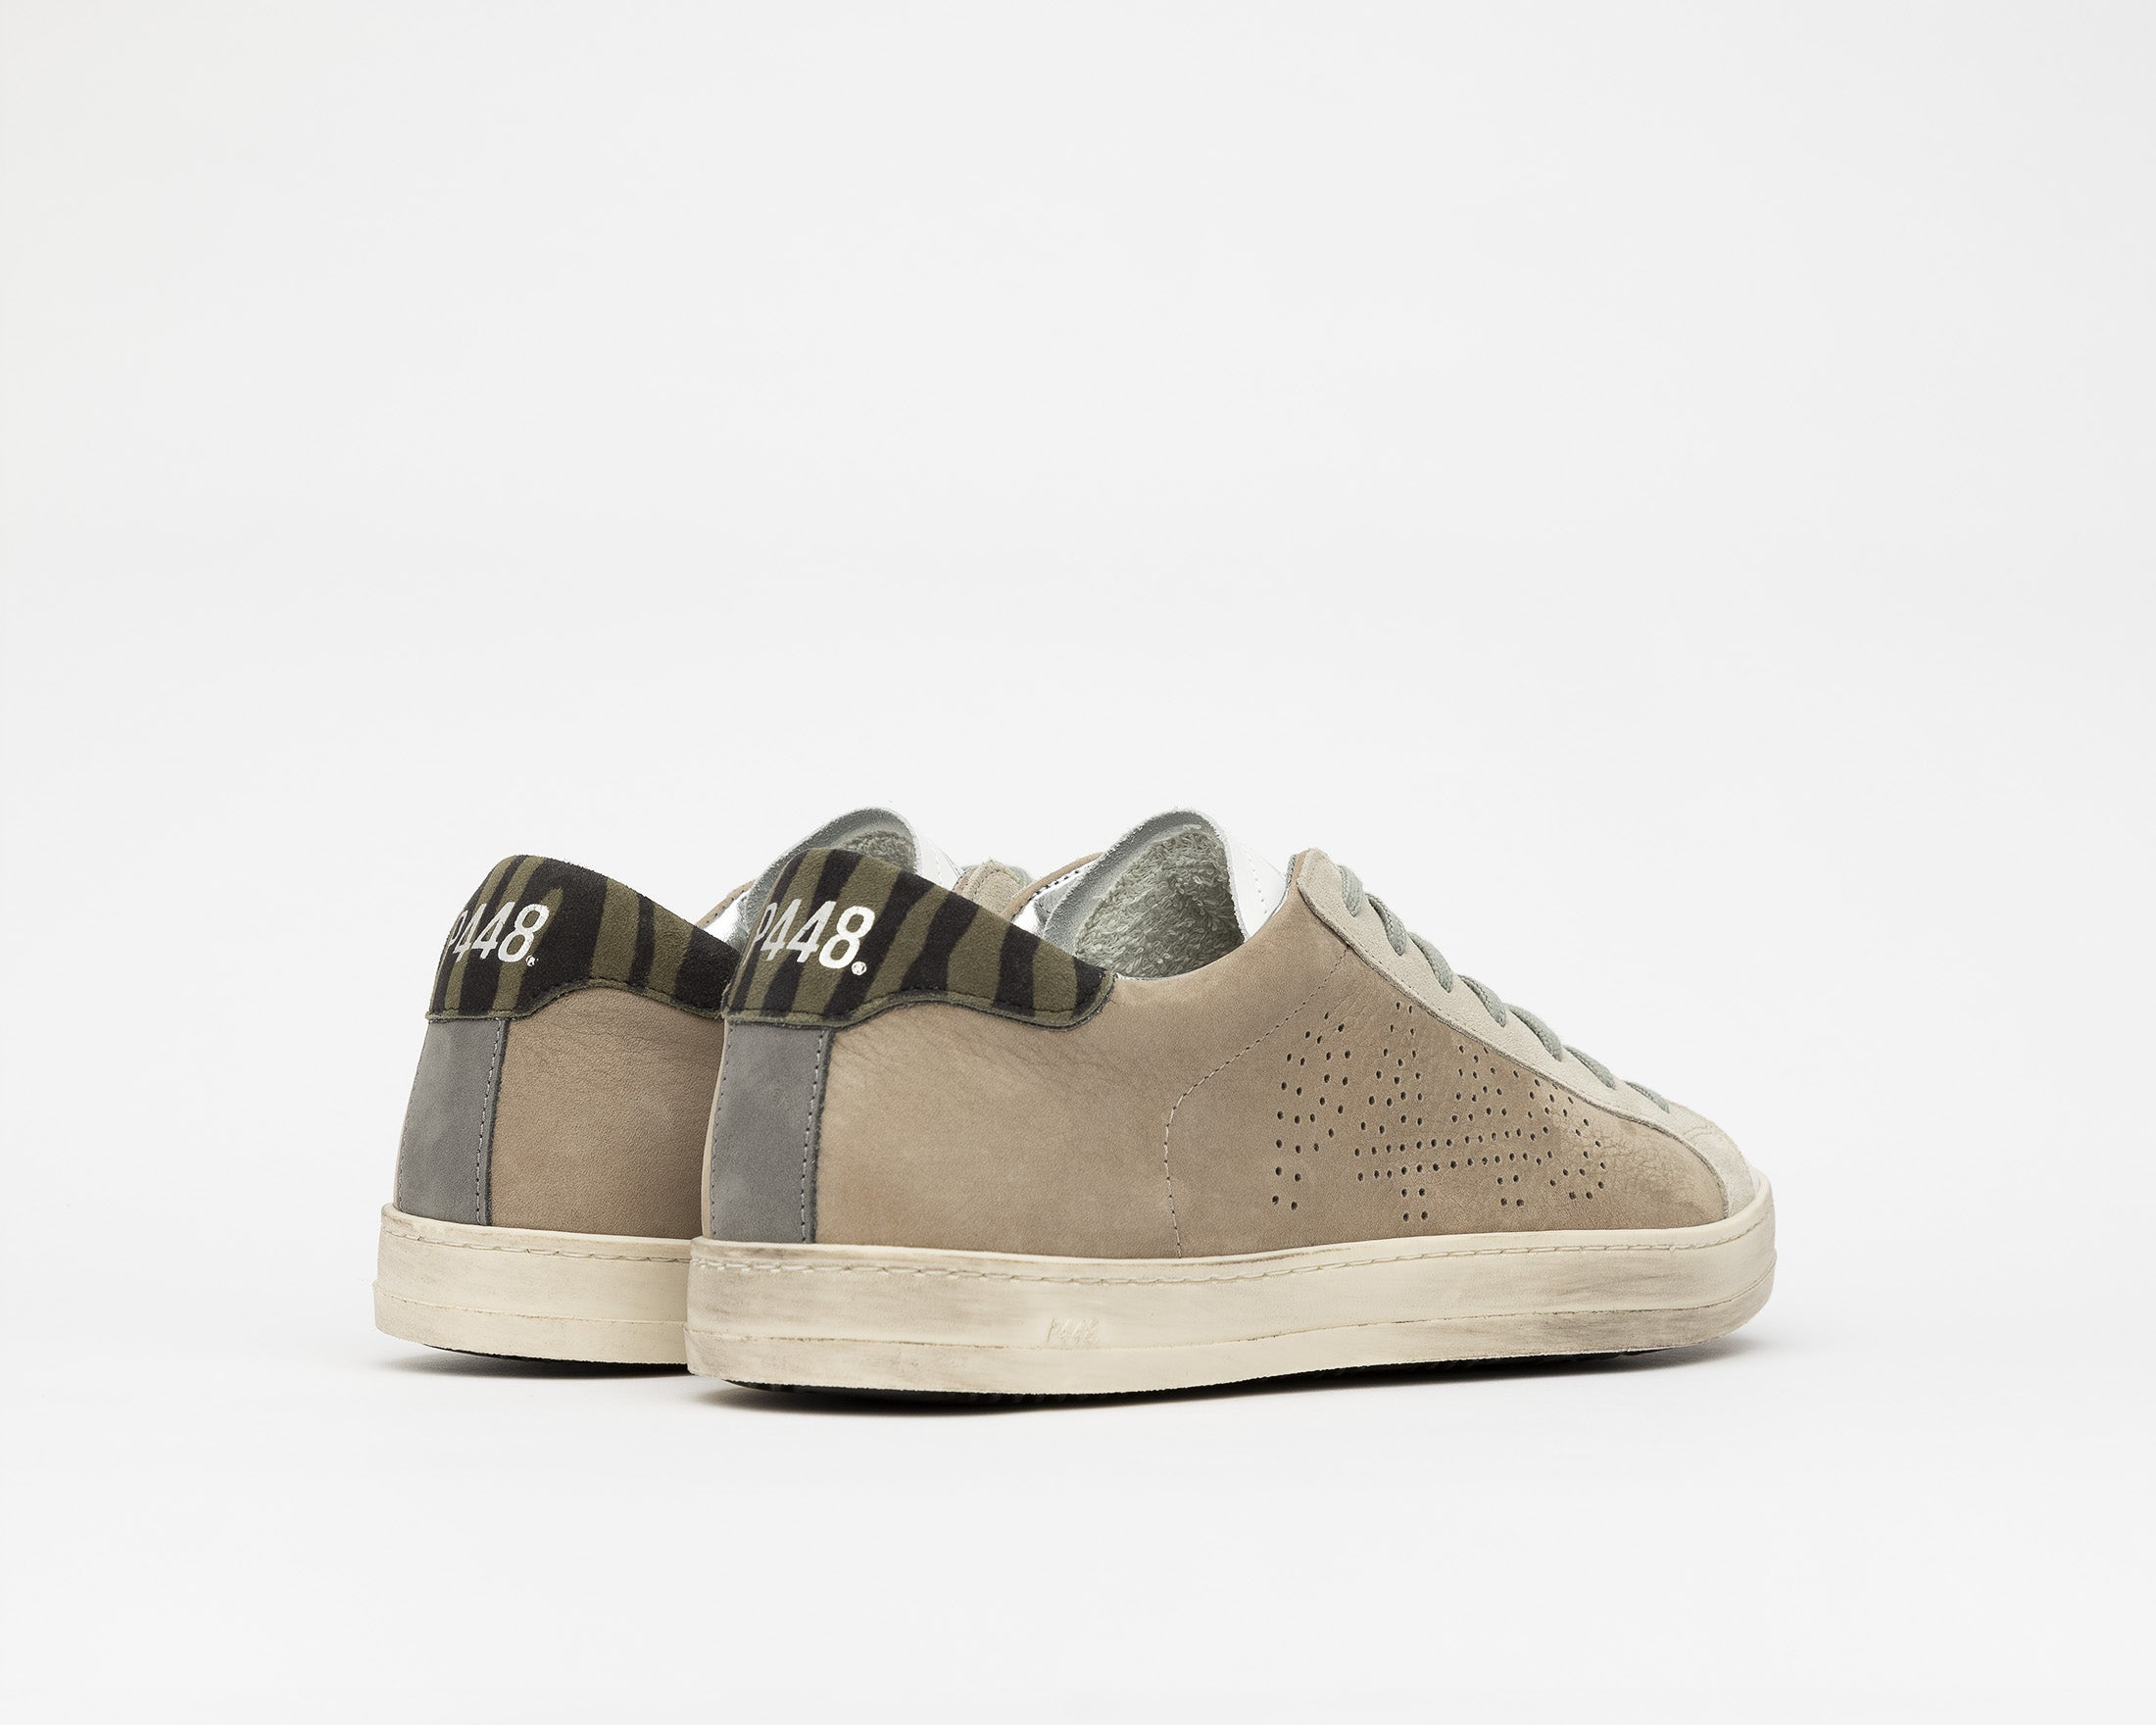 John Low-Top Sneaker in Gray NabJohn Low-Top Sneaker in Gray Nubuck - Back